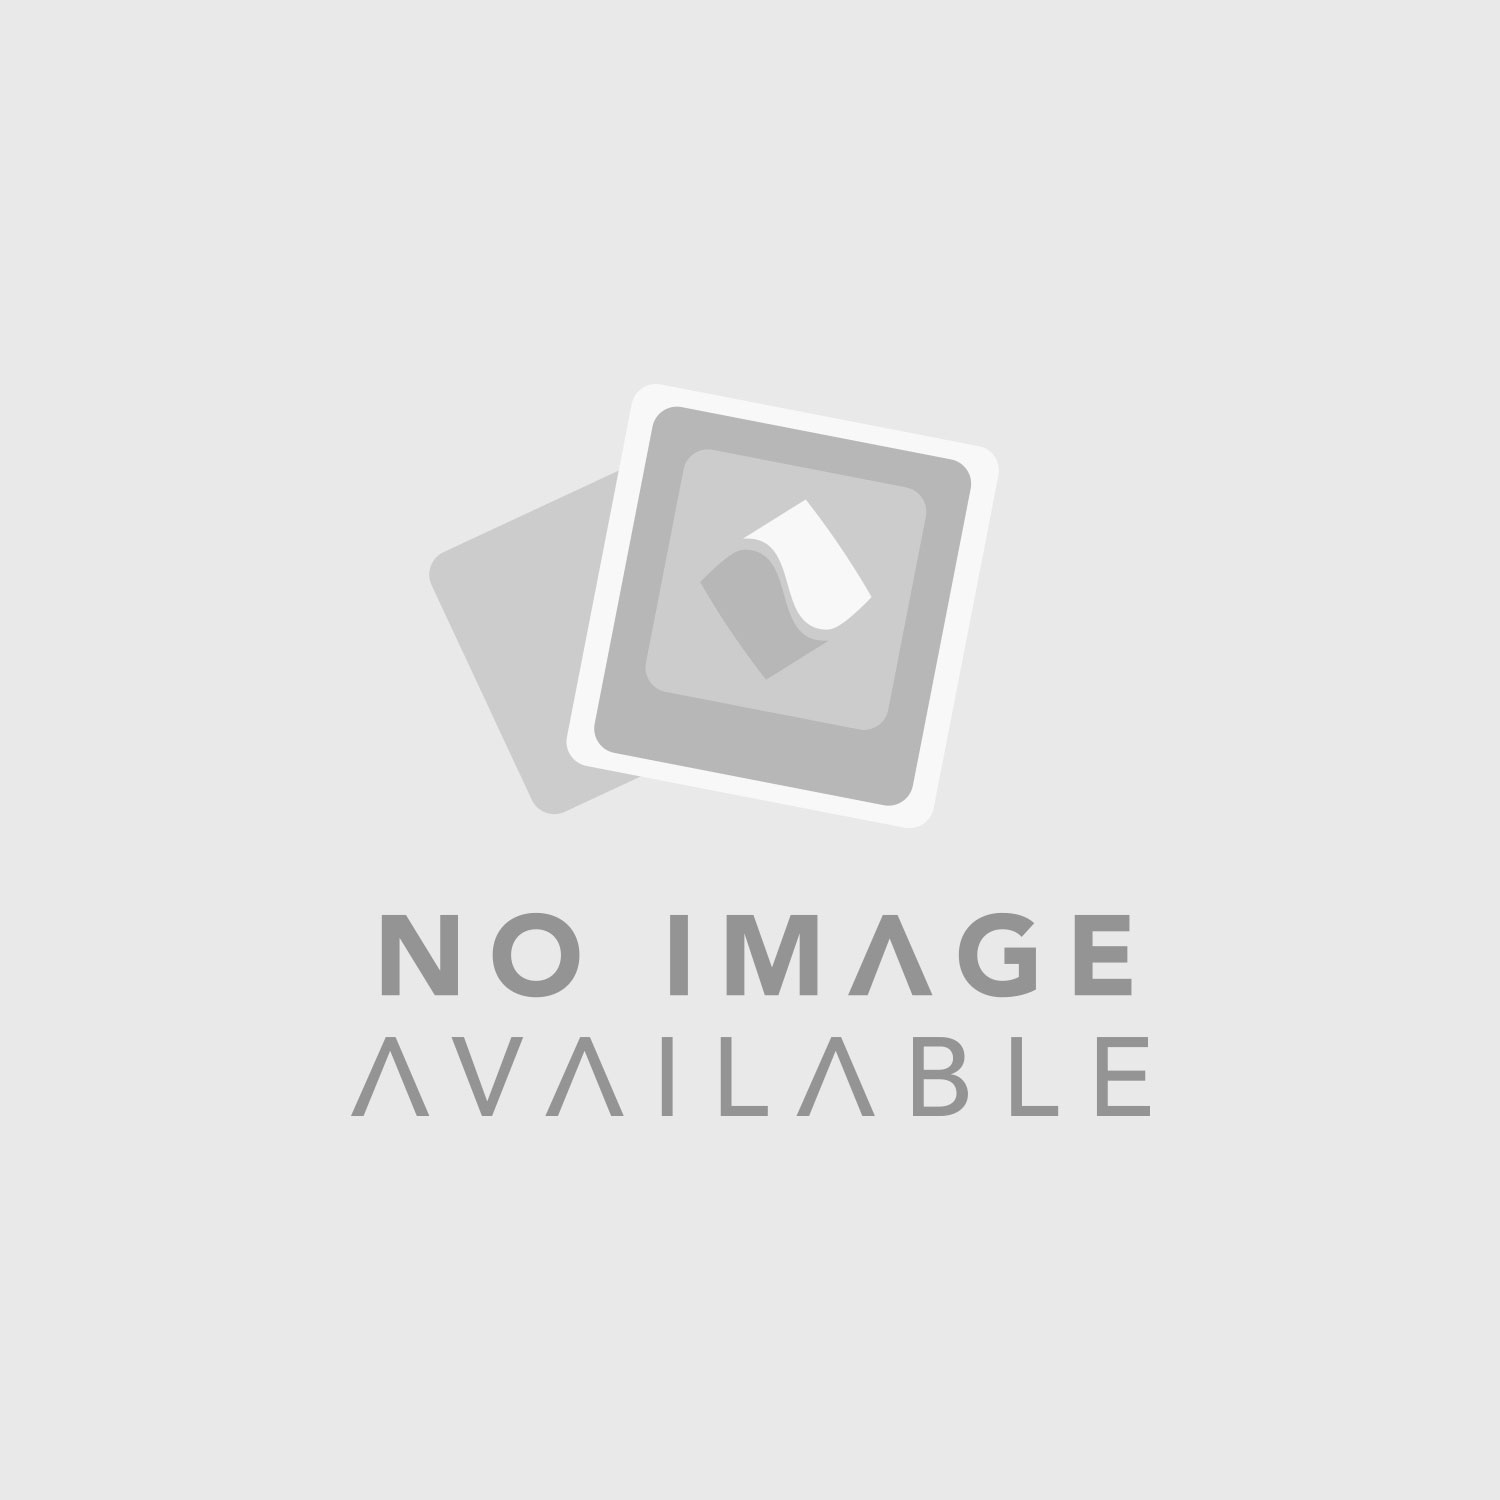 Zoom PodTrak P4 4-Person Podcast Recording Kit with Recorder, Microphones, Headphones, and Stands